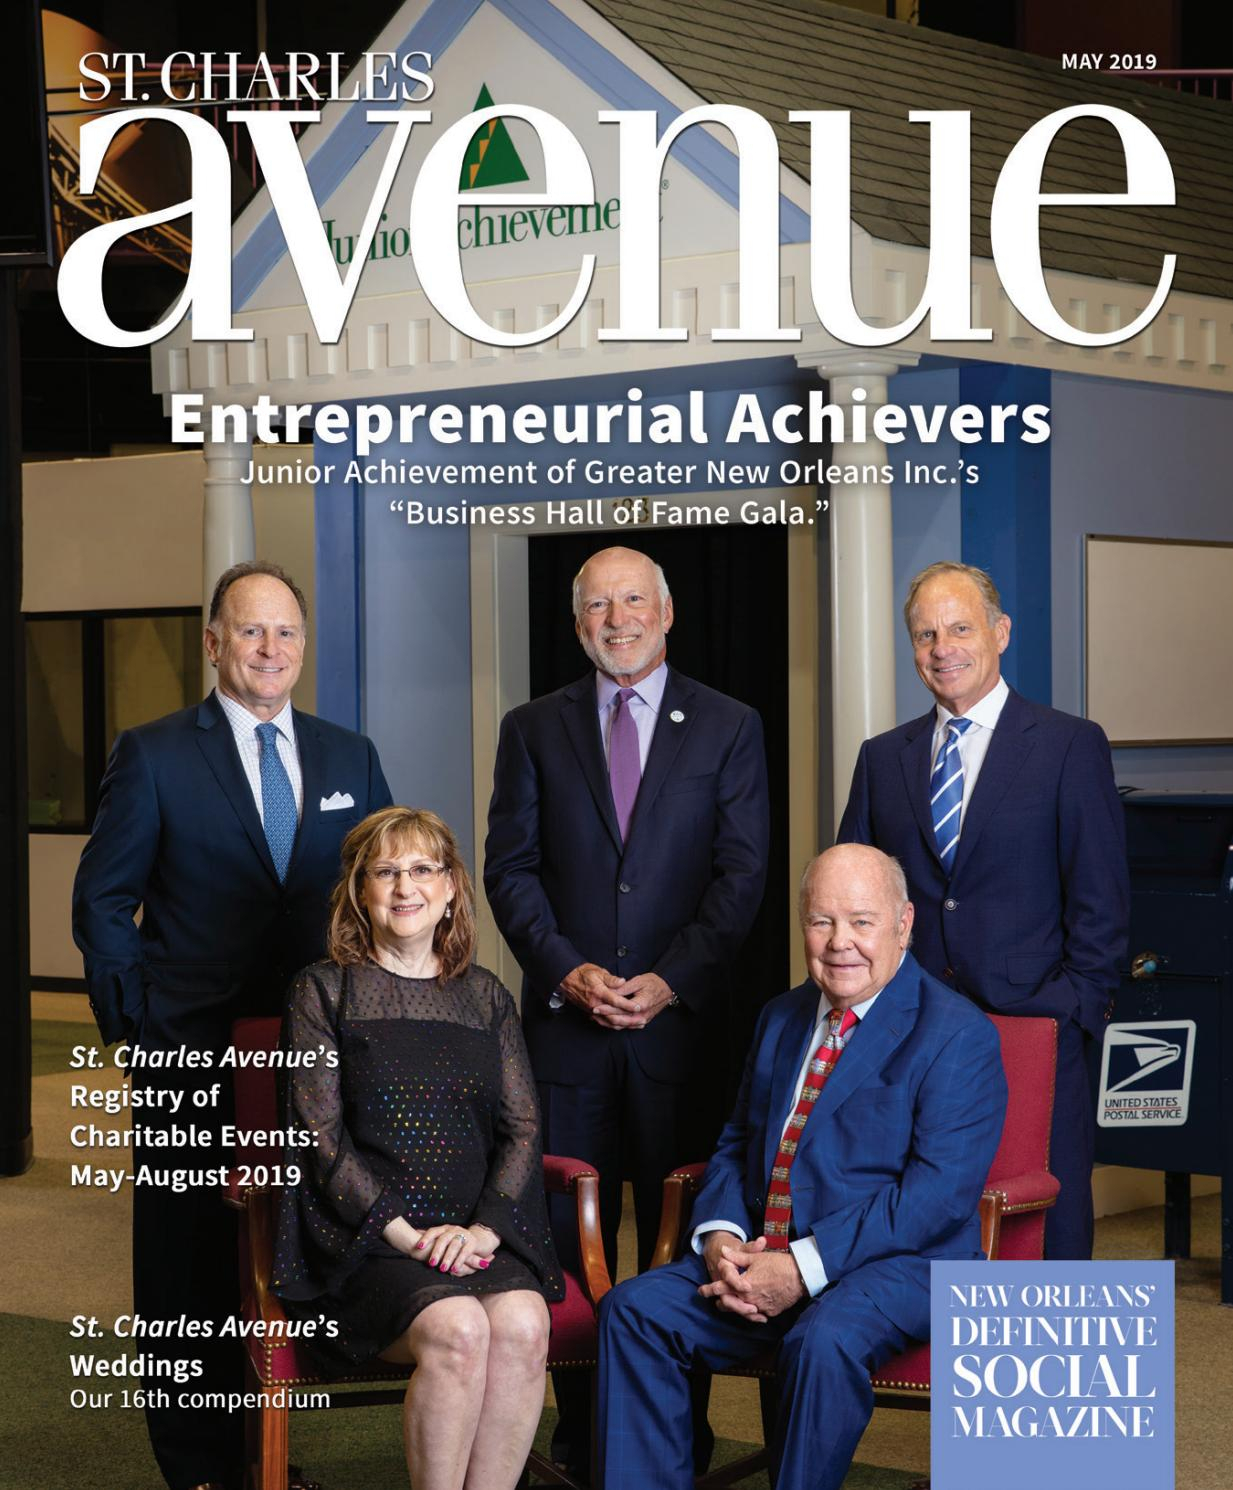 St. Charles Avenue Magazine May 2019 By Renaissance